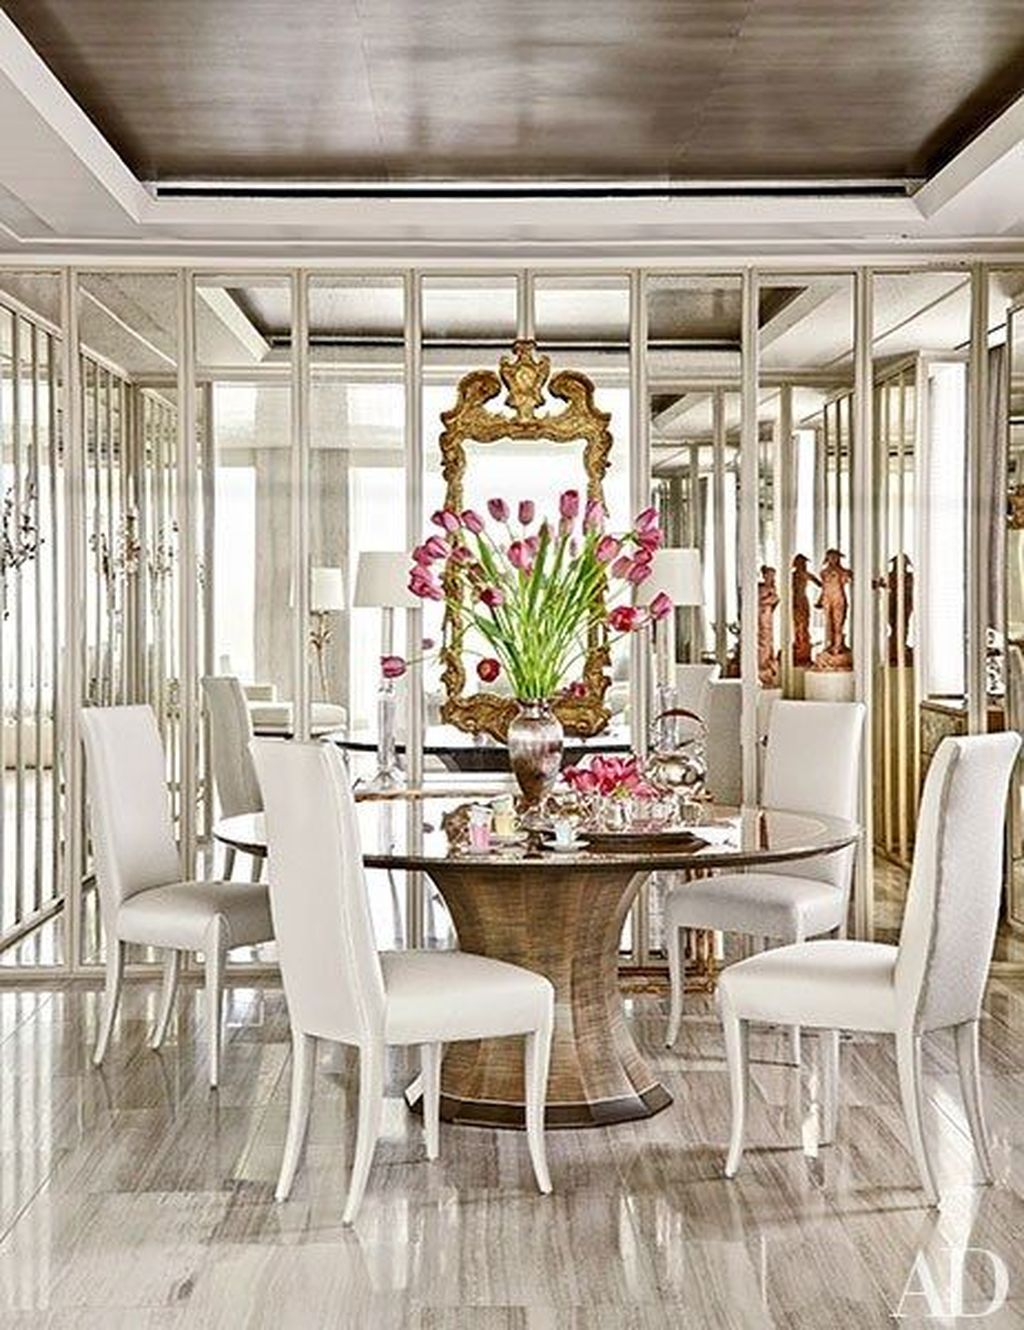 Amazing Wall Mirror Design Ideas For Dining Room Decor 24